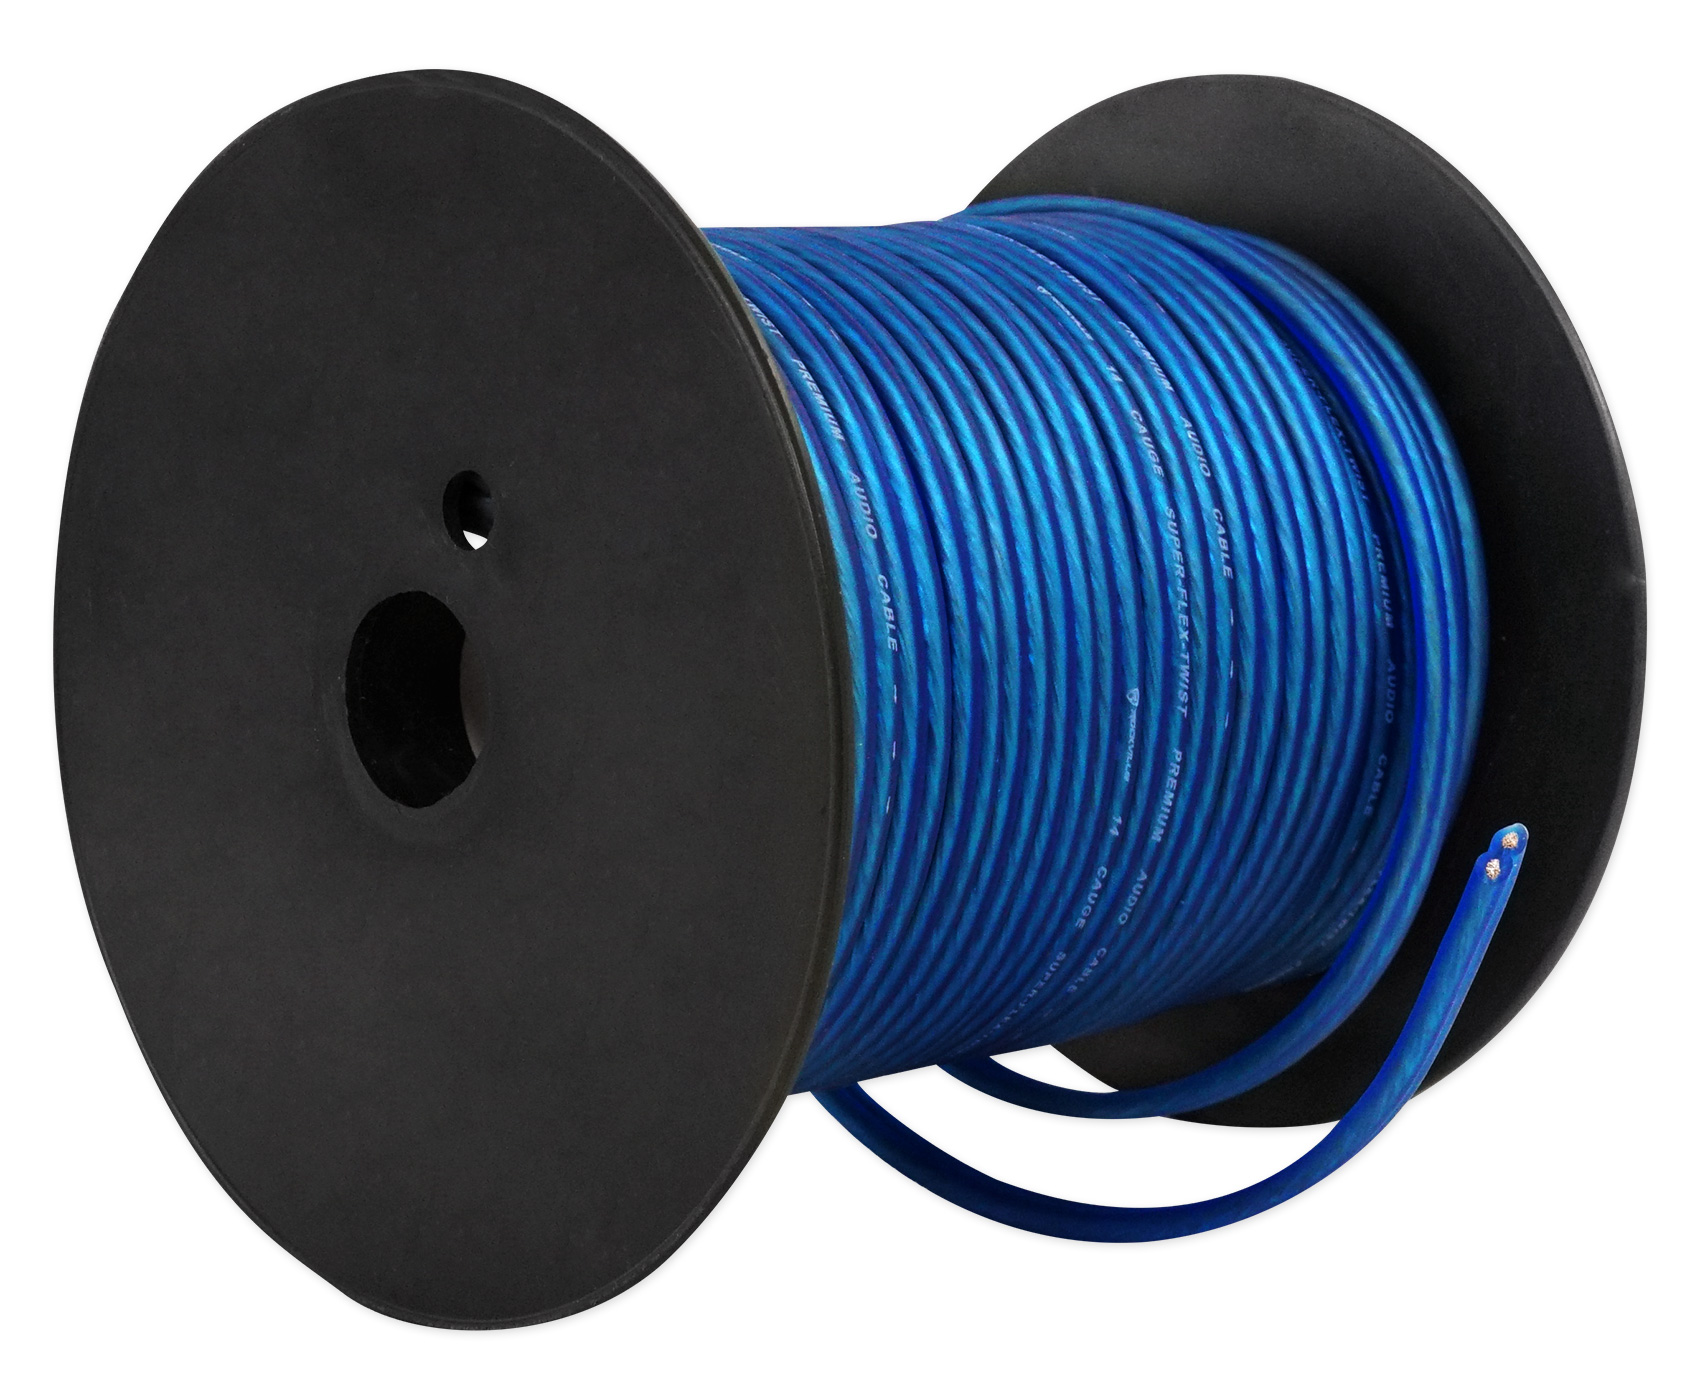 hight resolution of rockville r14gblu100 blue 14 gauge 100 foot mini spool car audio speaker wire walmart com